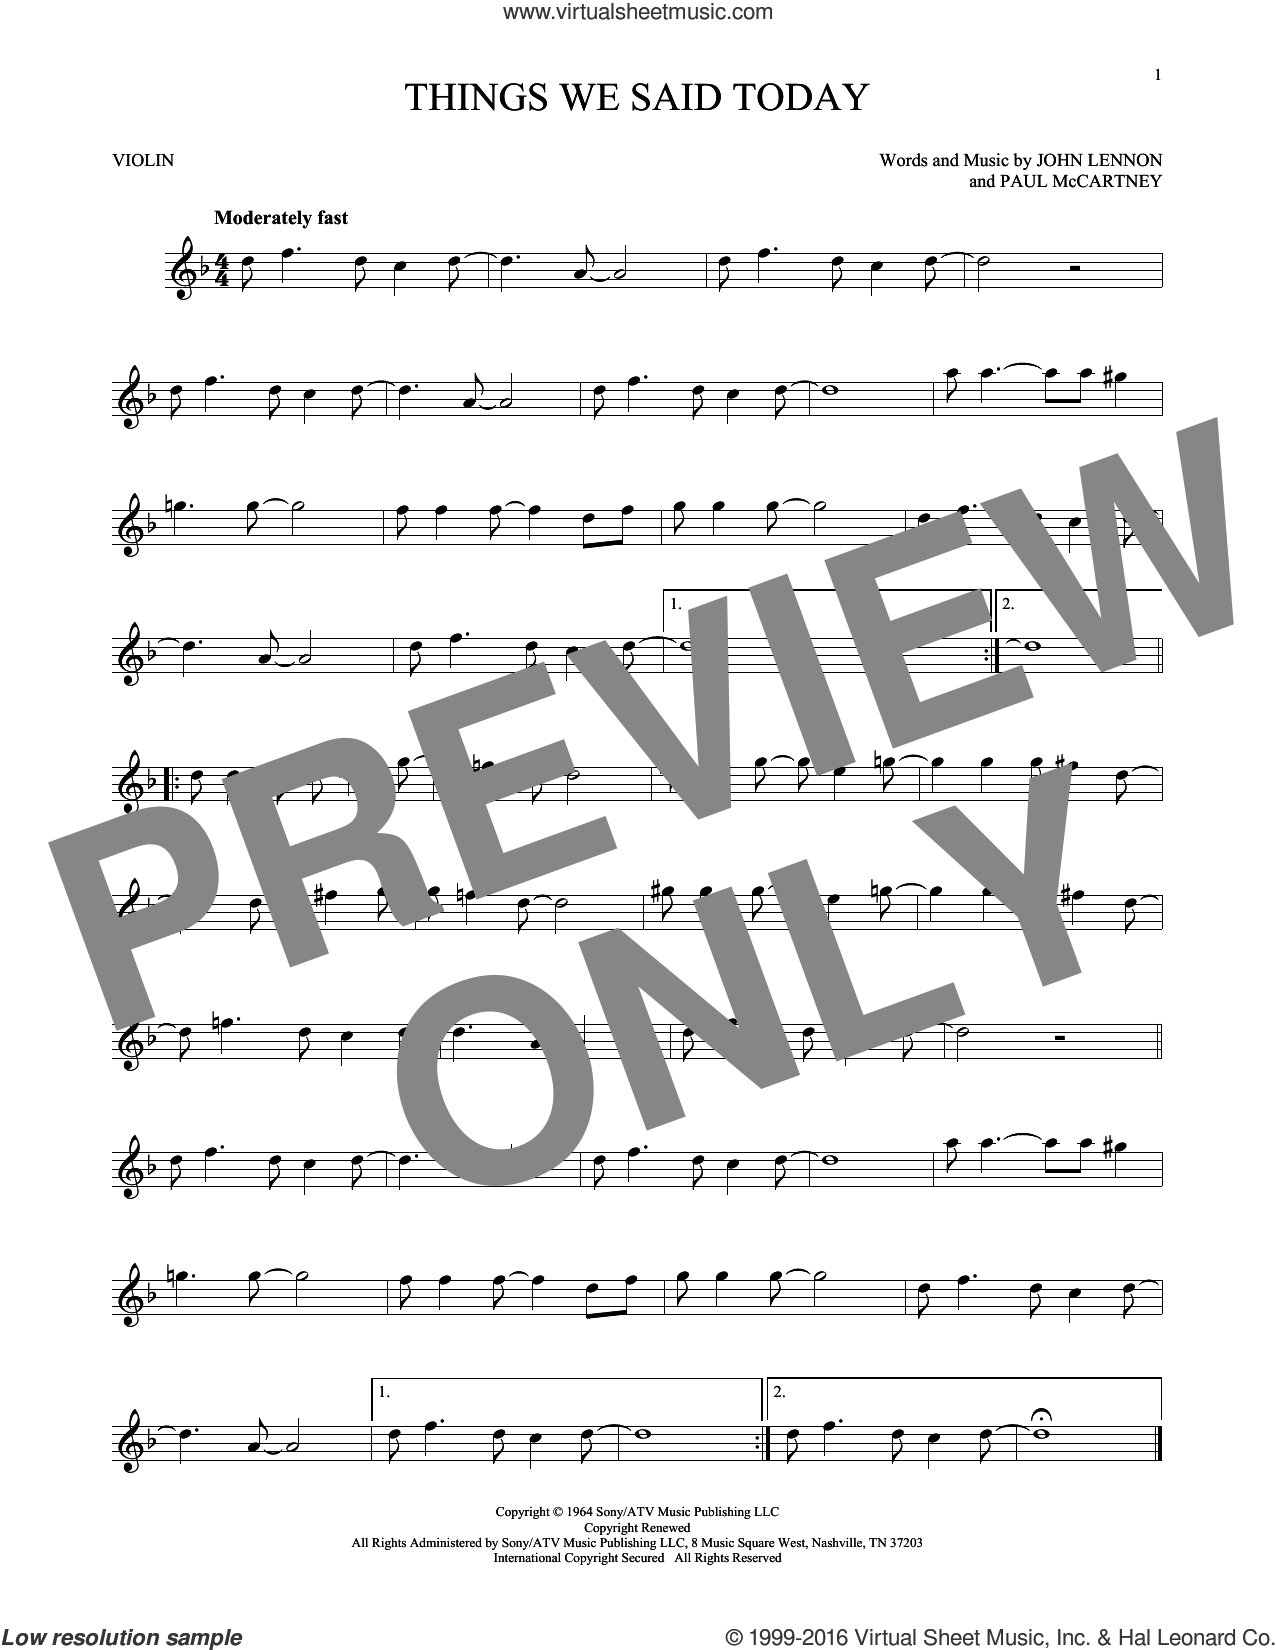 Things We Said Today sheet music for violin solo by The Beatles, John Lennon and Paul McCartney, intermediate skill level